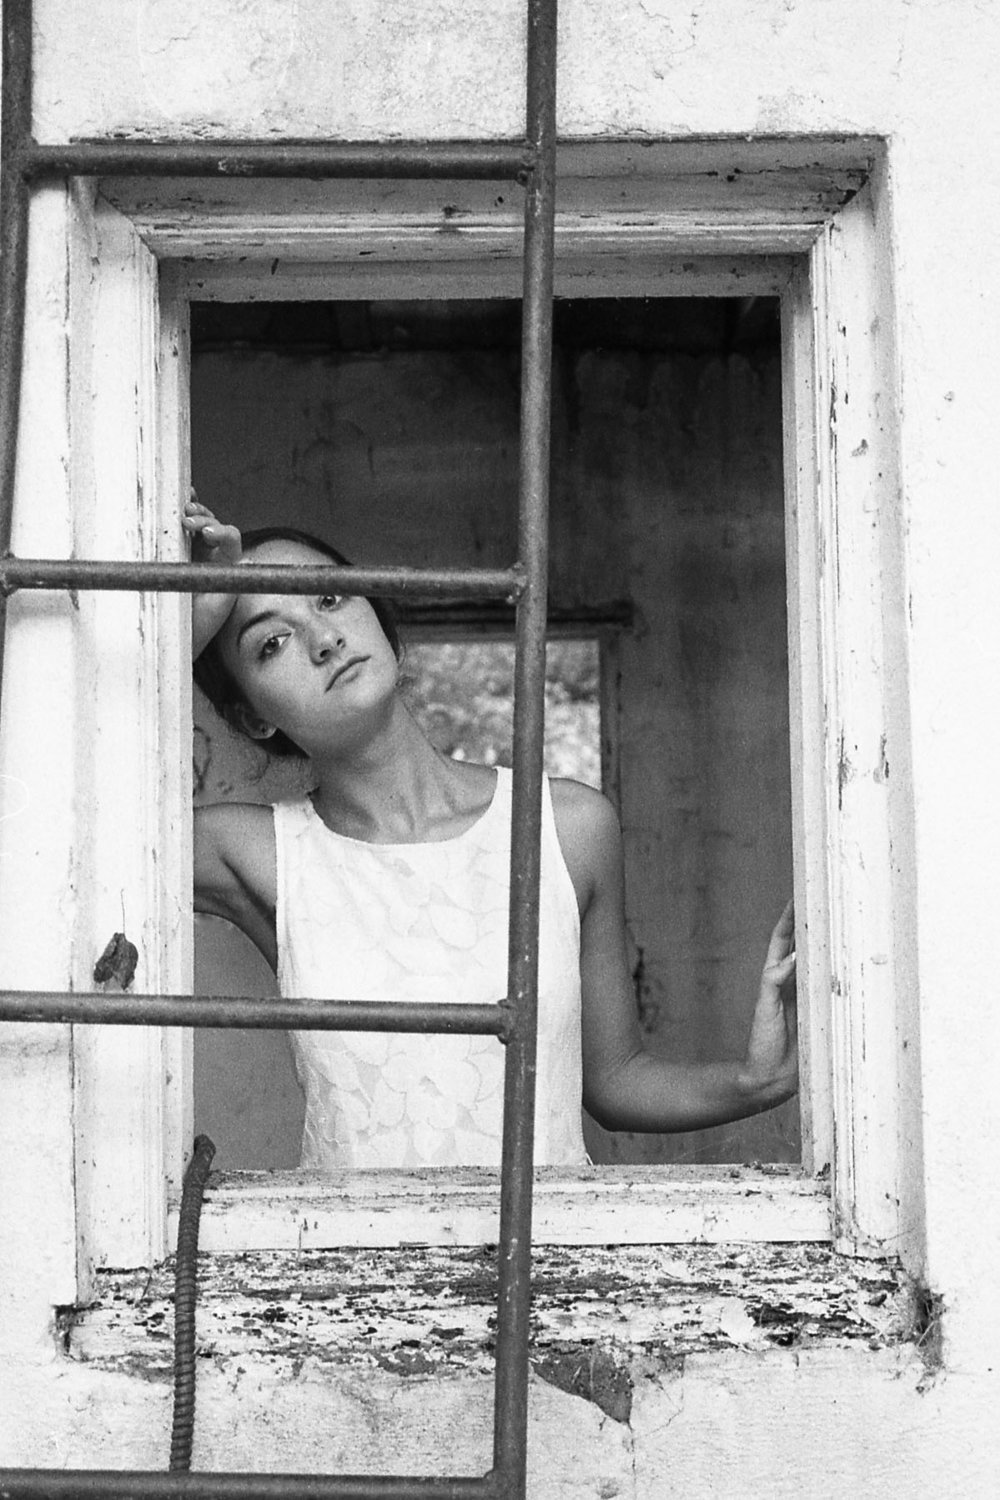 The Girl in the Window -  abandoned building in Daniels Dam, MD